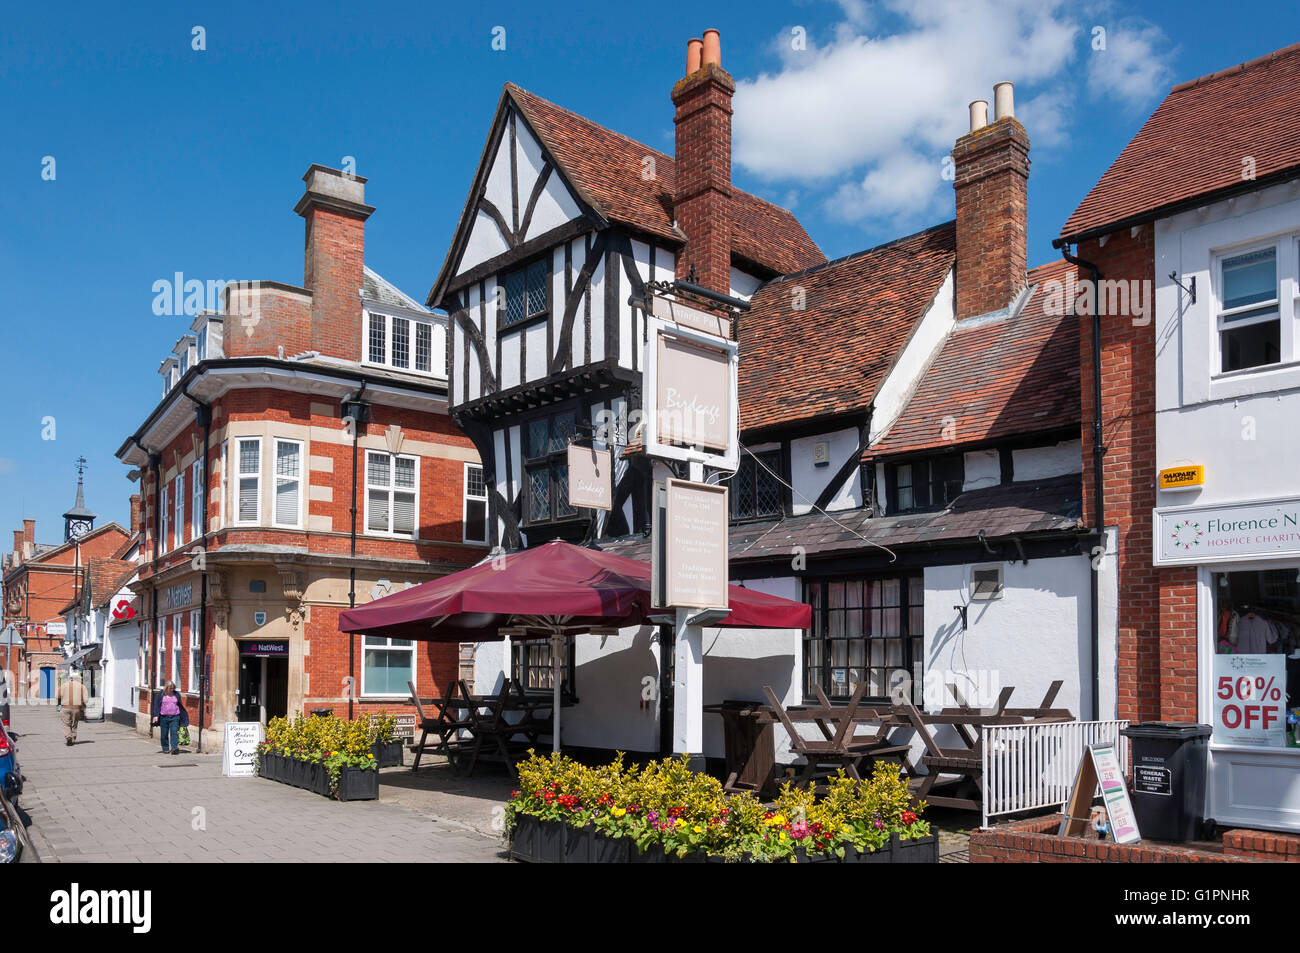 13th Century 'The Birdcage' pub, Cornmarket, Thame, Oxfordshire, England, United Kingdom - Stock Image